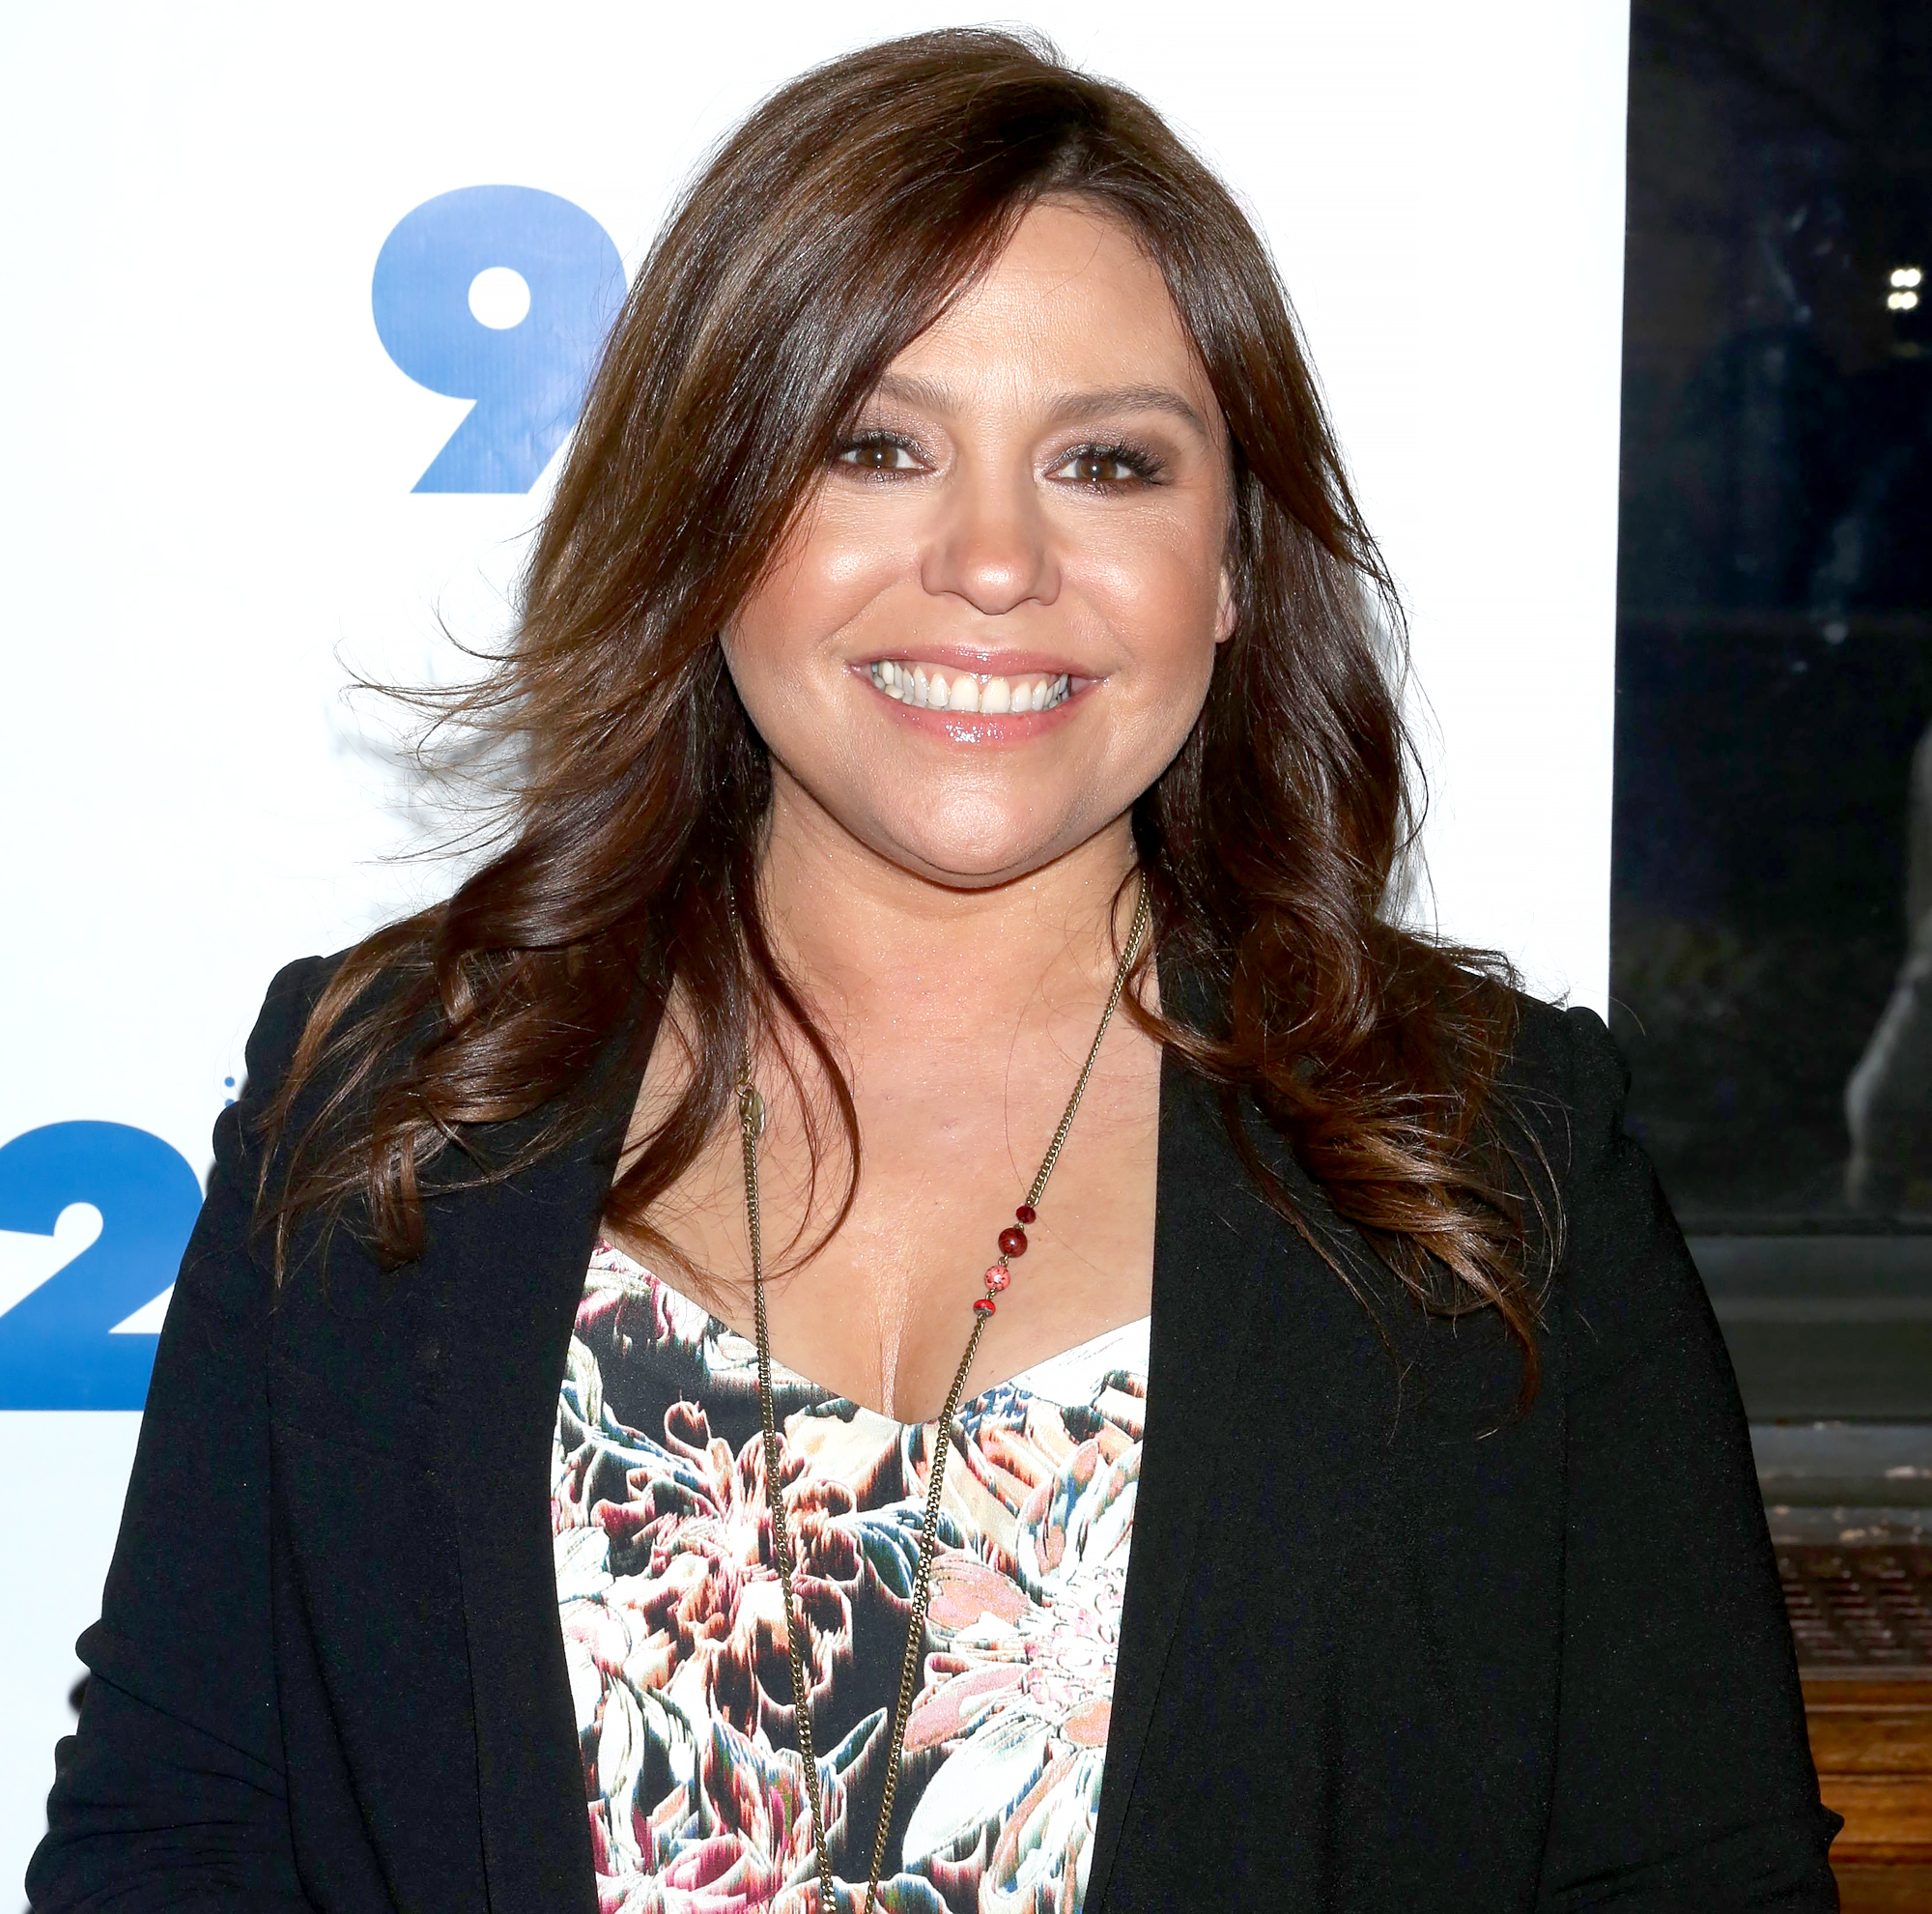 Rachael Ray Husband John Cusimano Dog Safe After Fire At Her Home